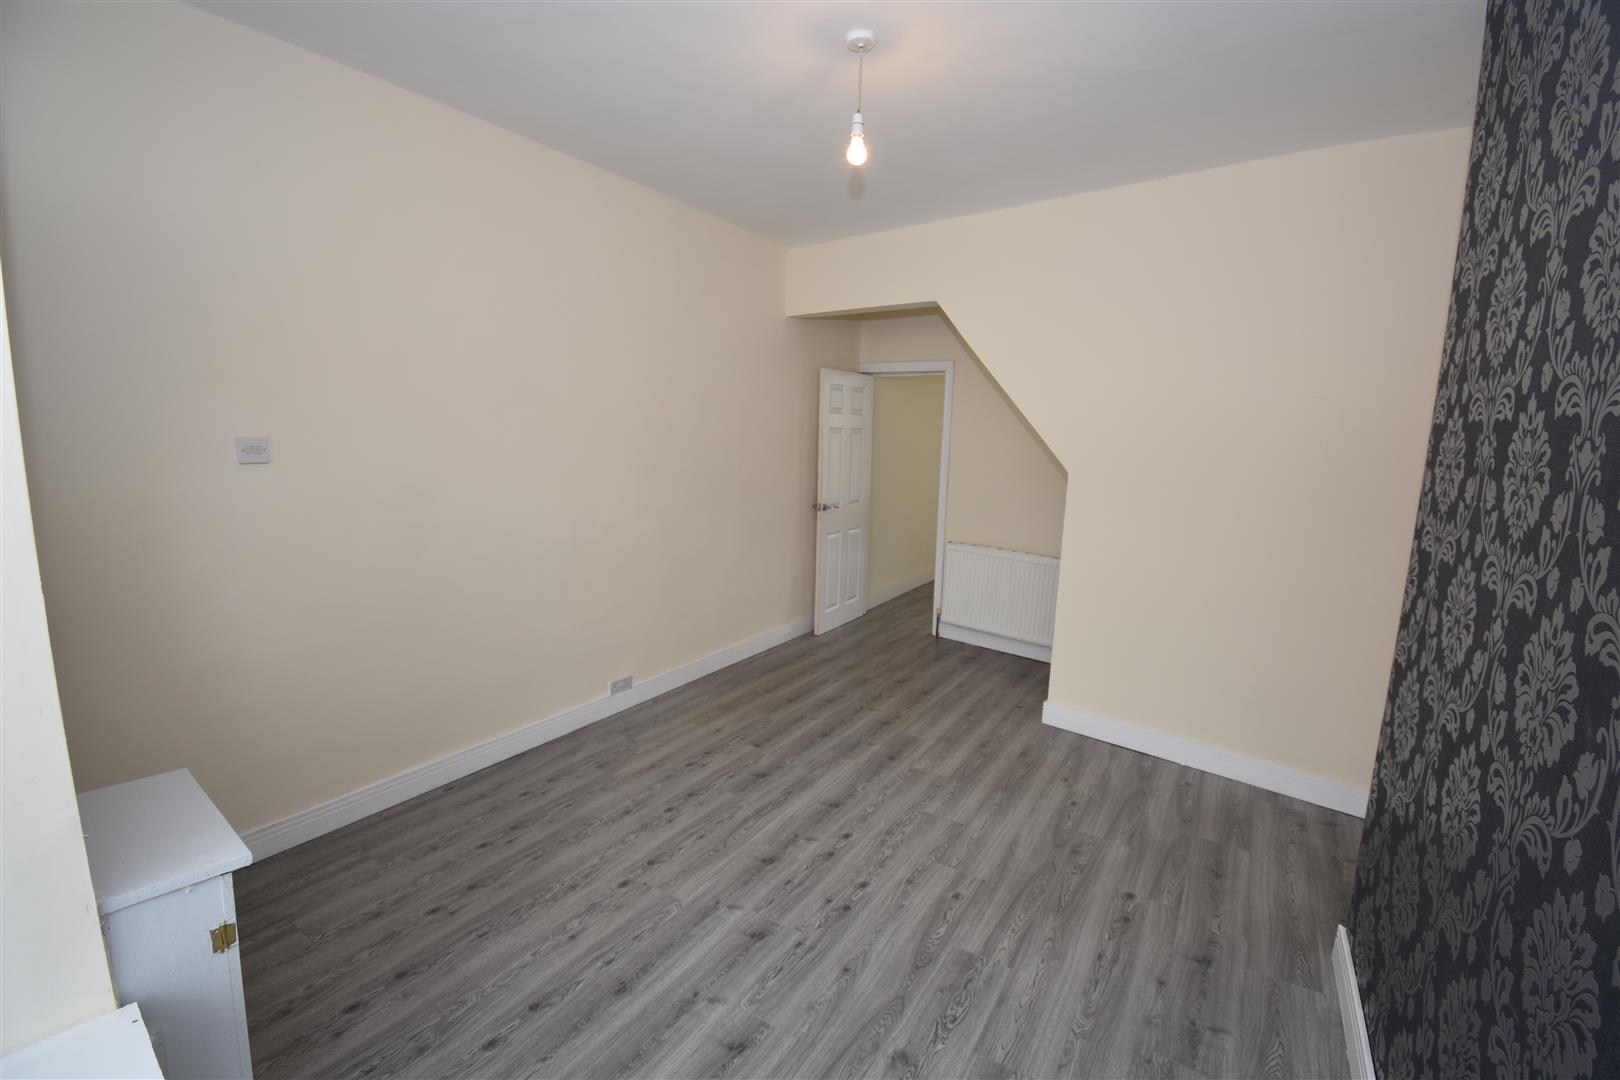 3 bed house for sale in Asquith Road, Ward End, Birmingham 3